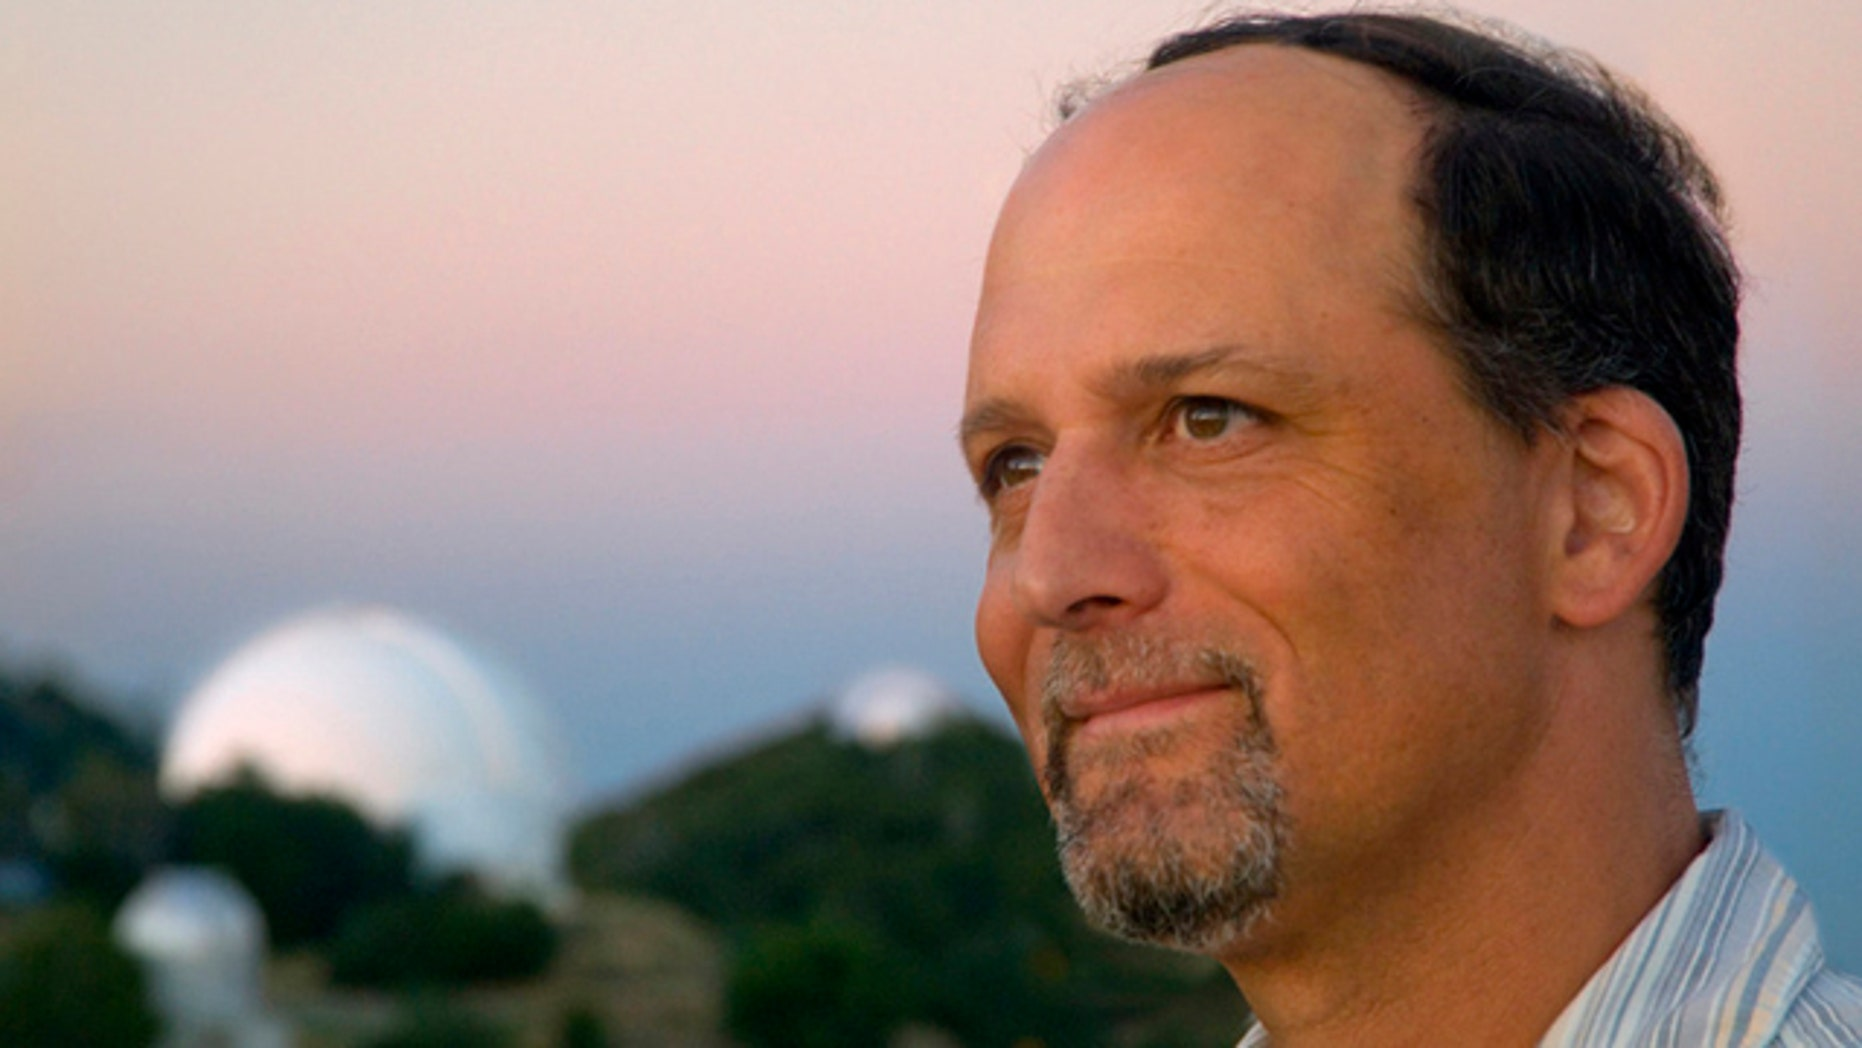 This undated photo shows former University of California-Berkeley astronomy professor Geoffrey Marcy, who resigned Wednesday, Oct. 14, 2015 over sexual harassment allegations by several female students (NASA)